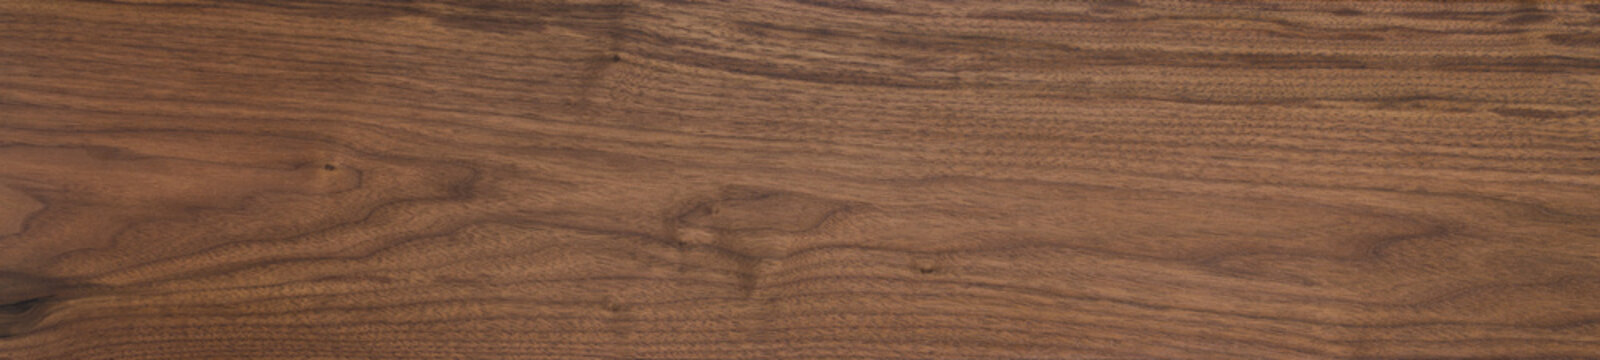 Black walnut wood texture of solid board oil finished